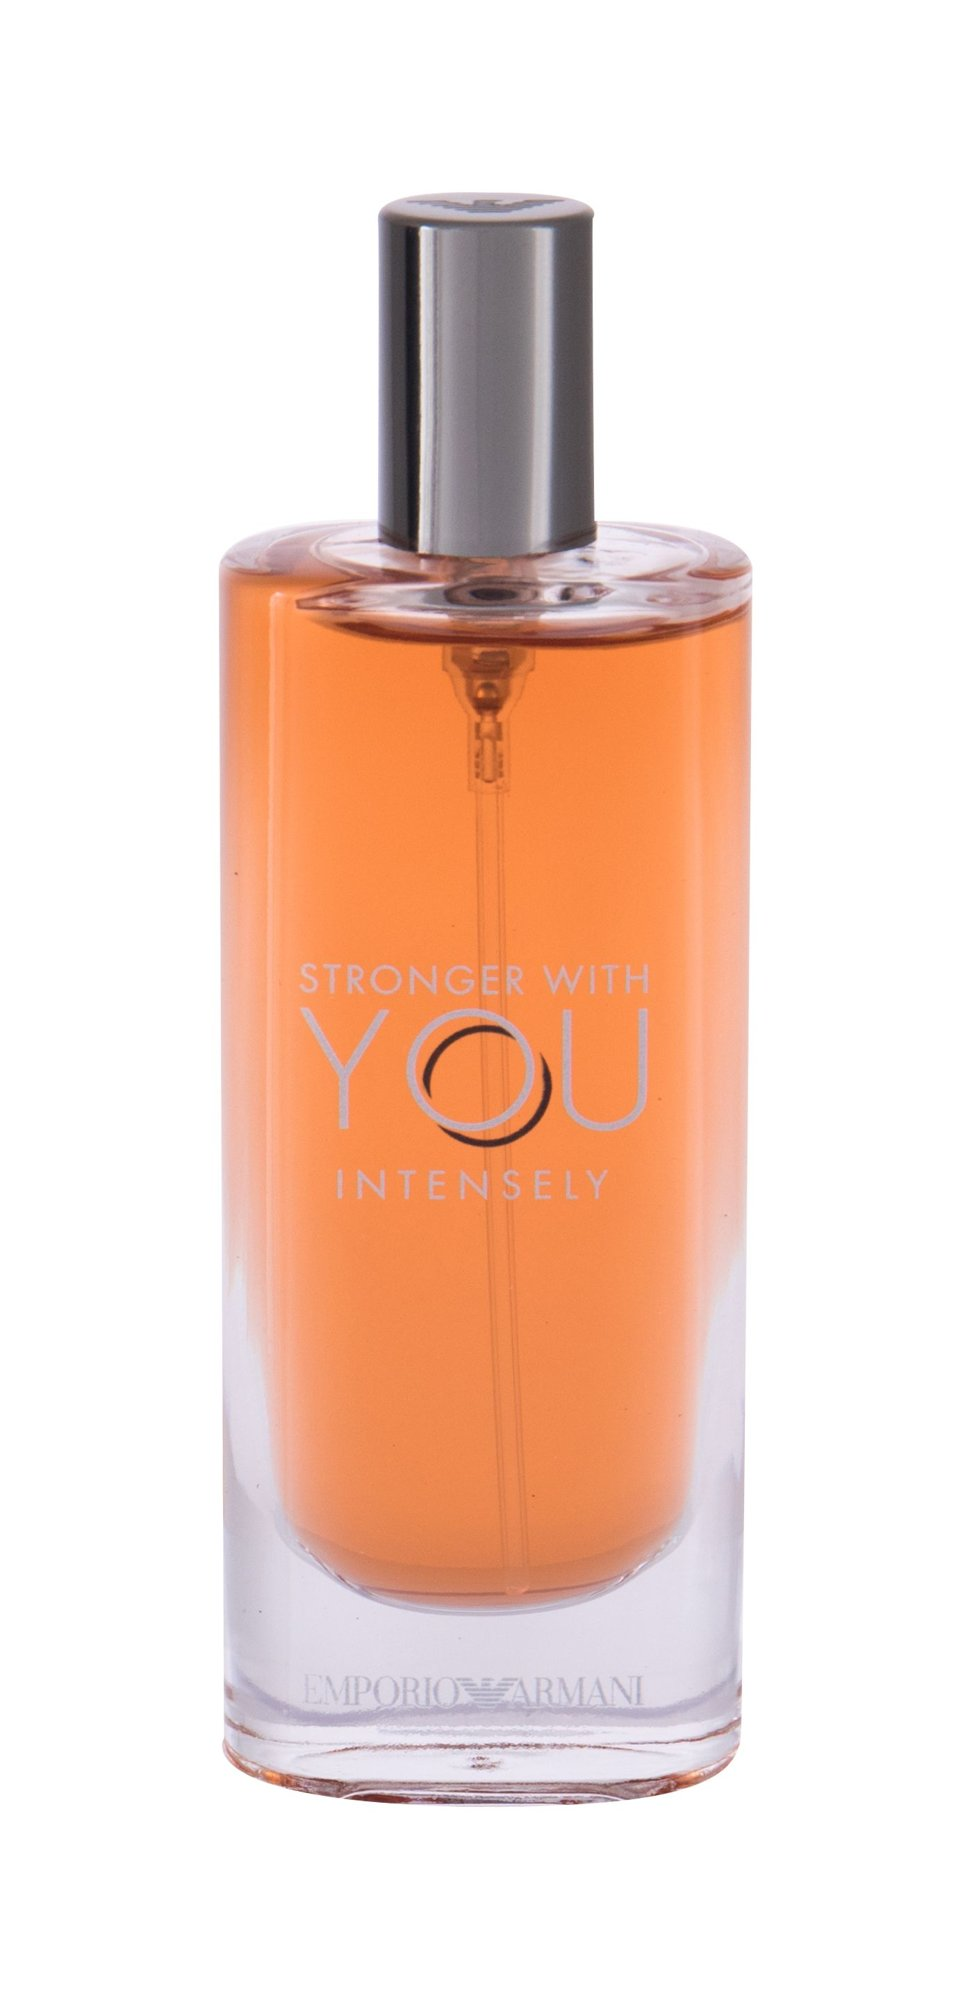 Giorgio Armani Emporio Armani Stronger With You Intensely, edp 15ml